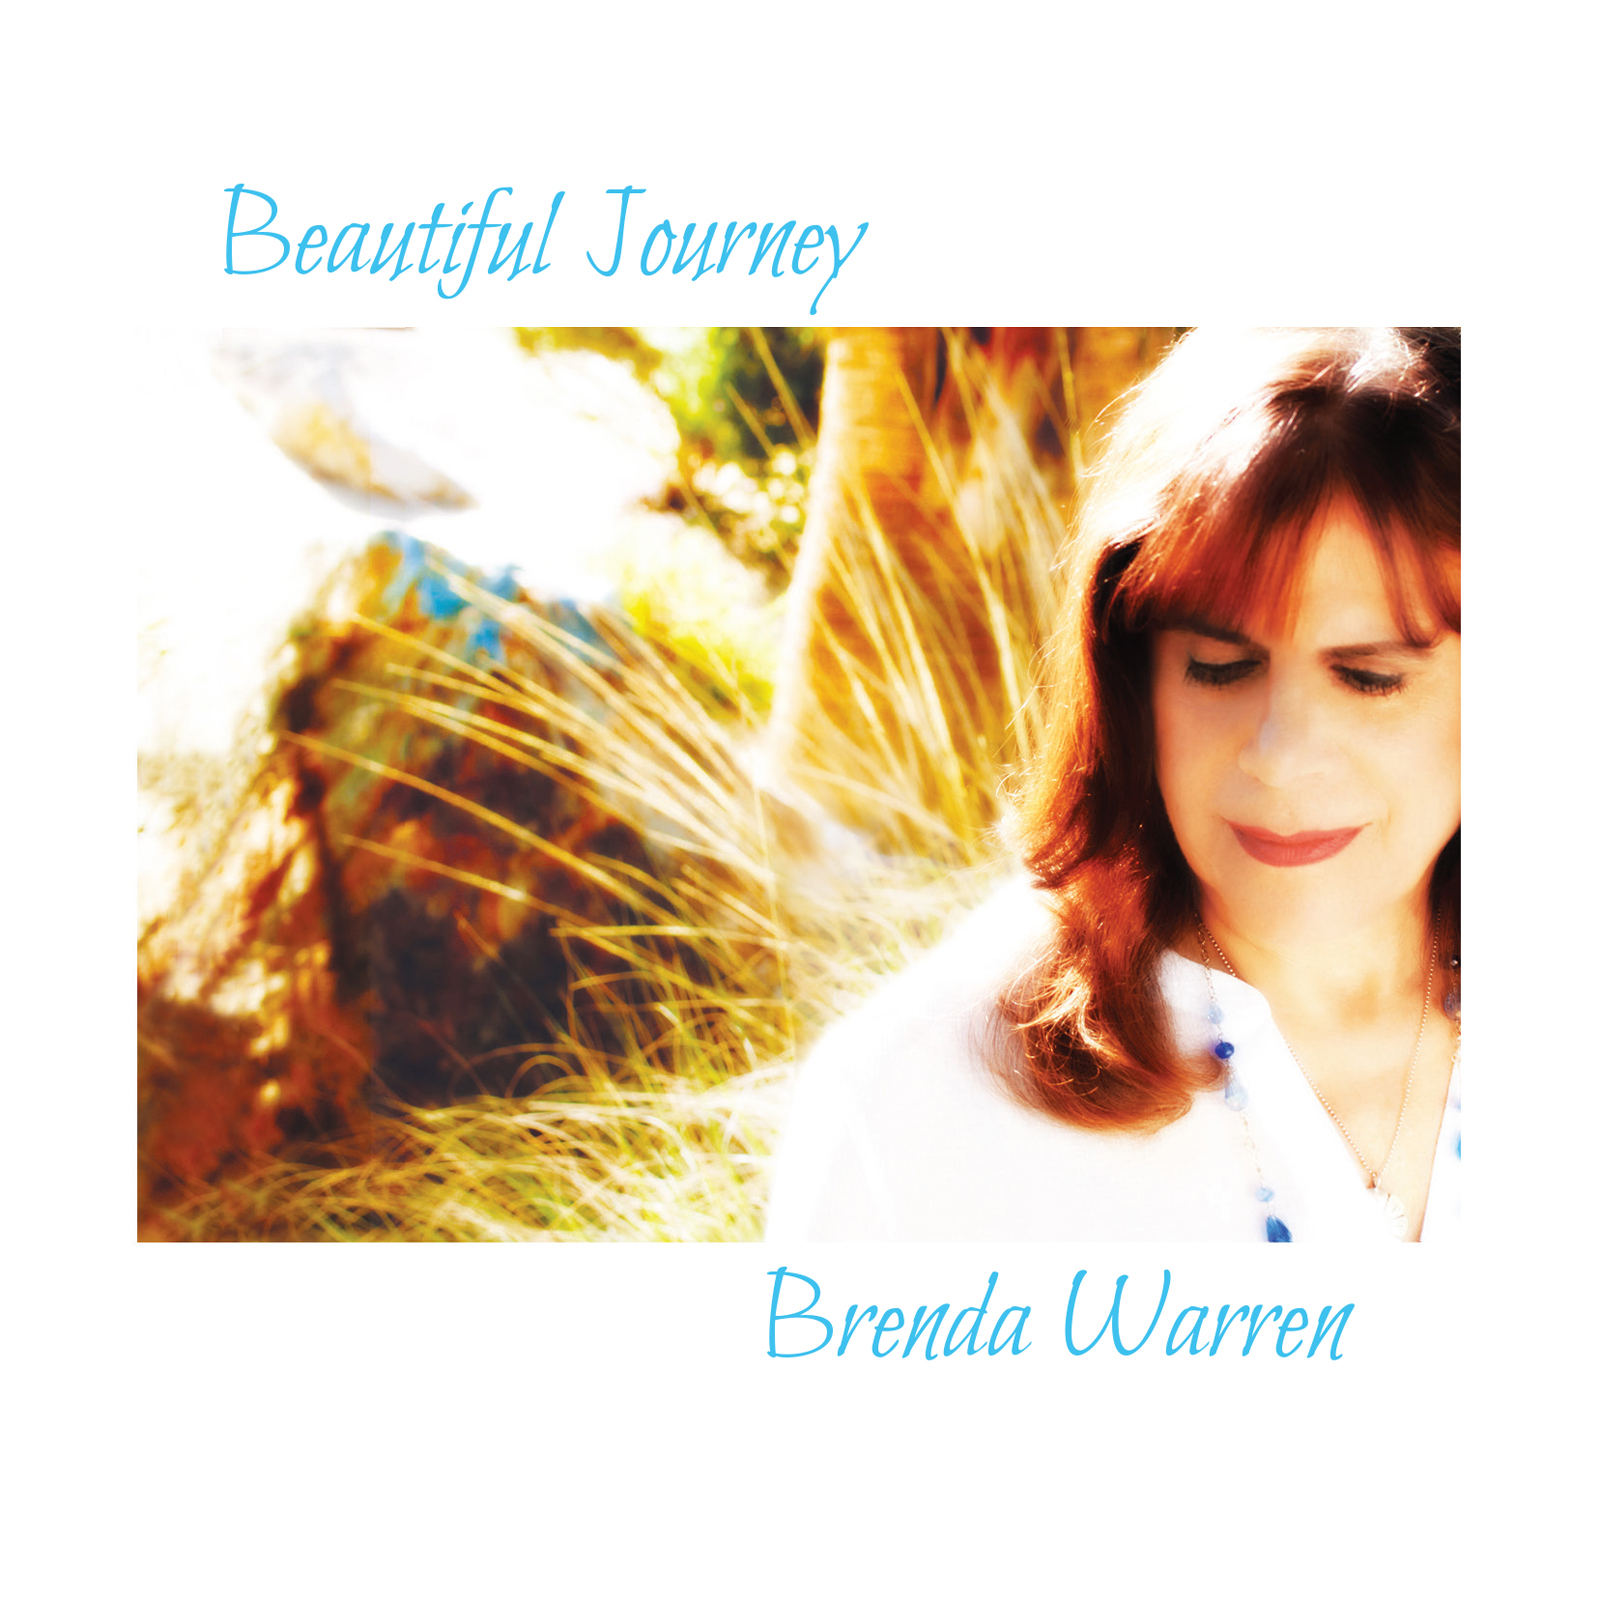 Beautiful Journey - Brenda Warren COVER.